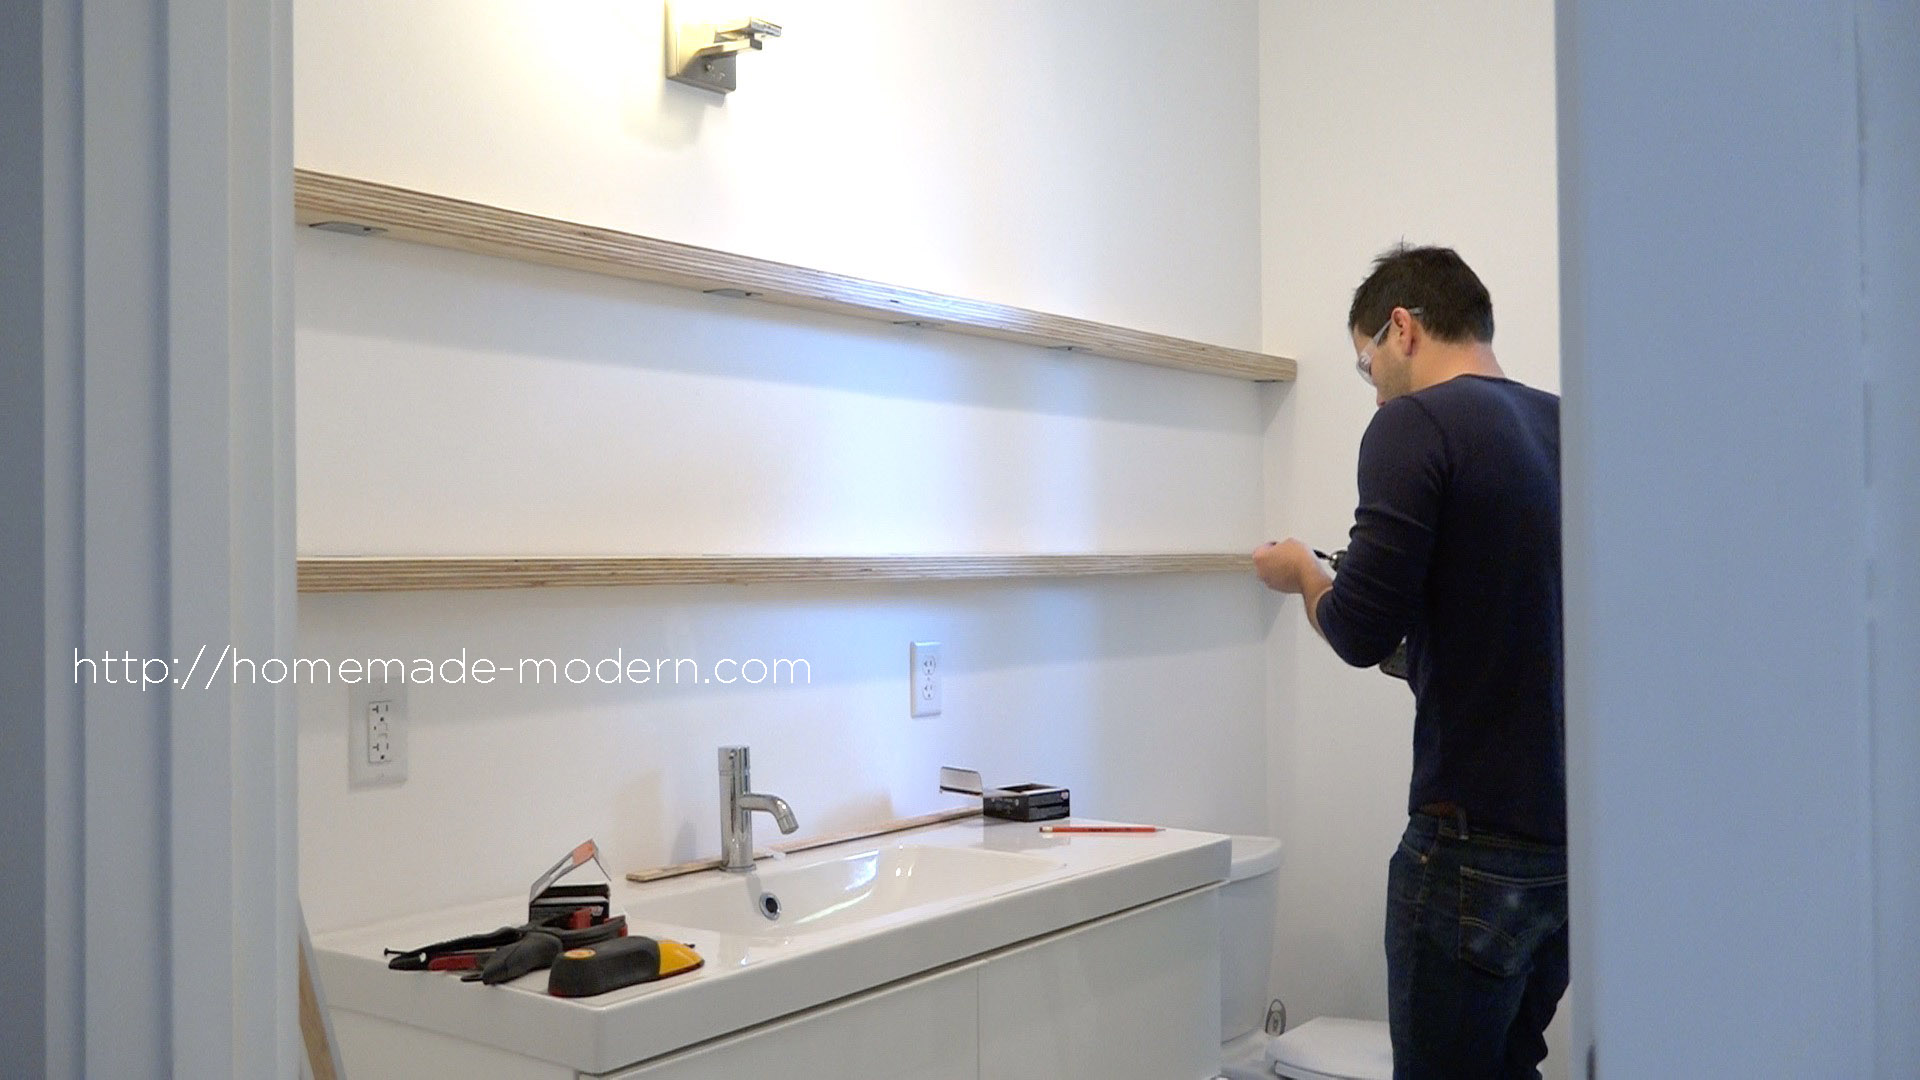 This Bathroom Mirror Features DIY Hardware That Slides On Plywood Shelves.  Full Instructions Can Be